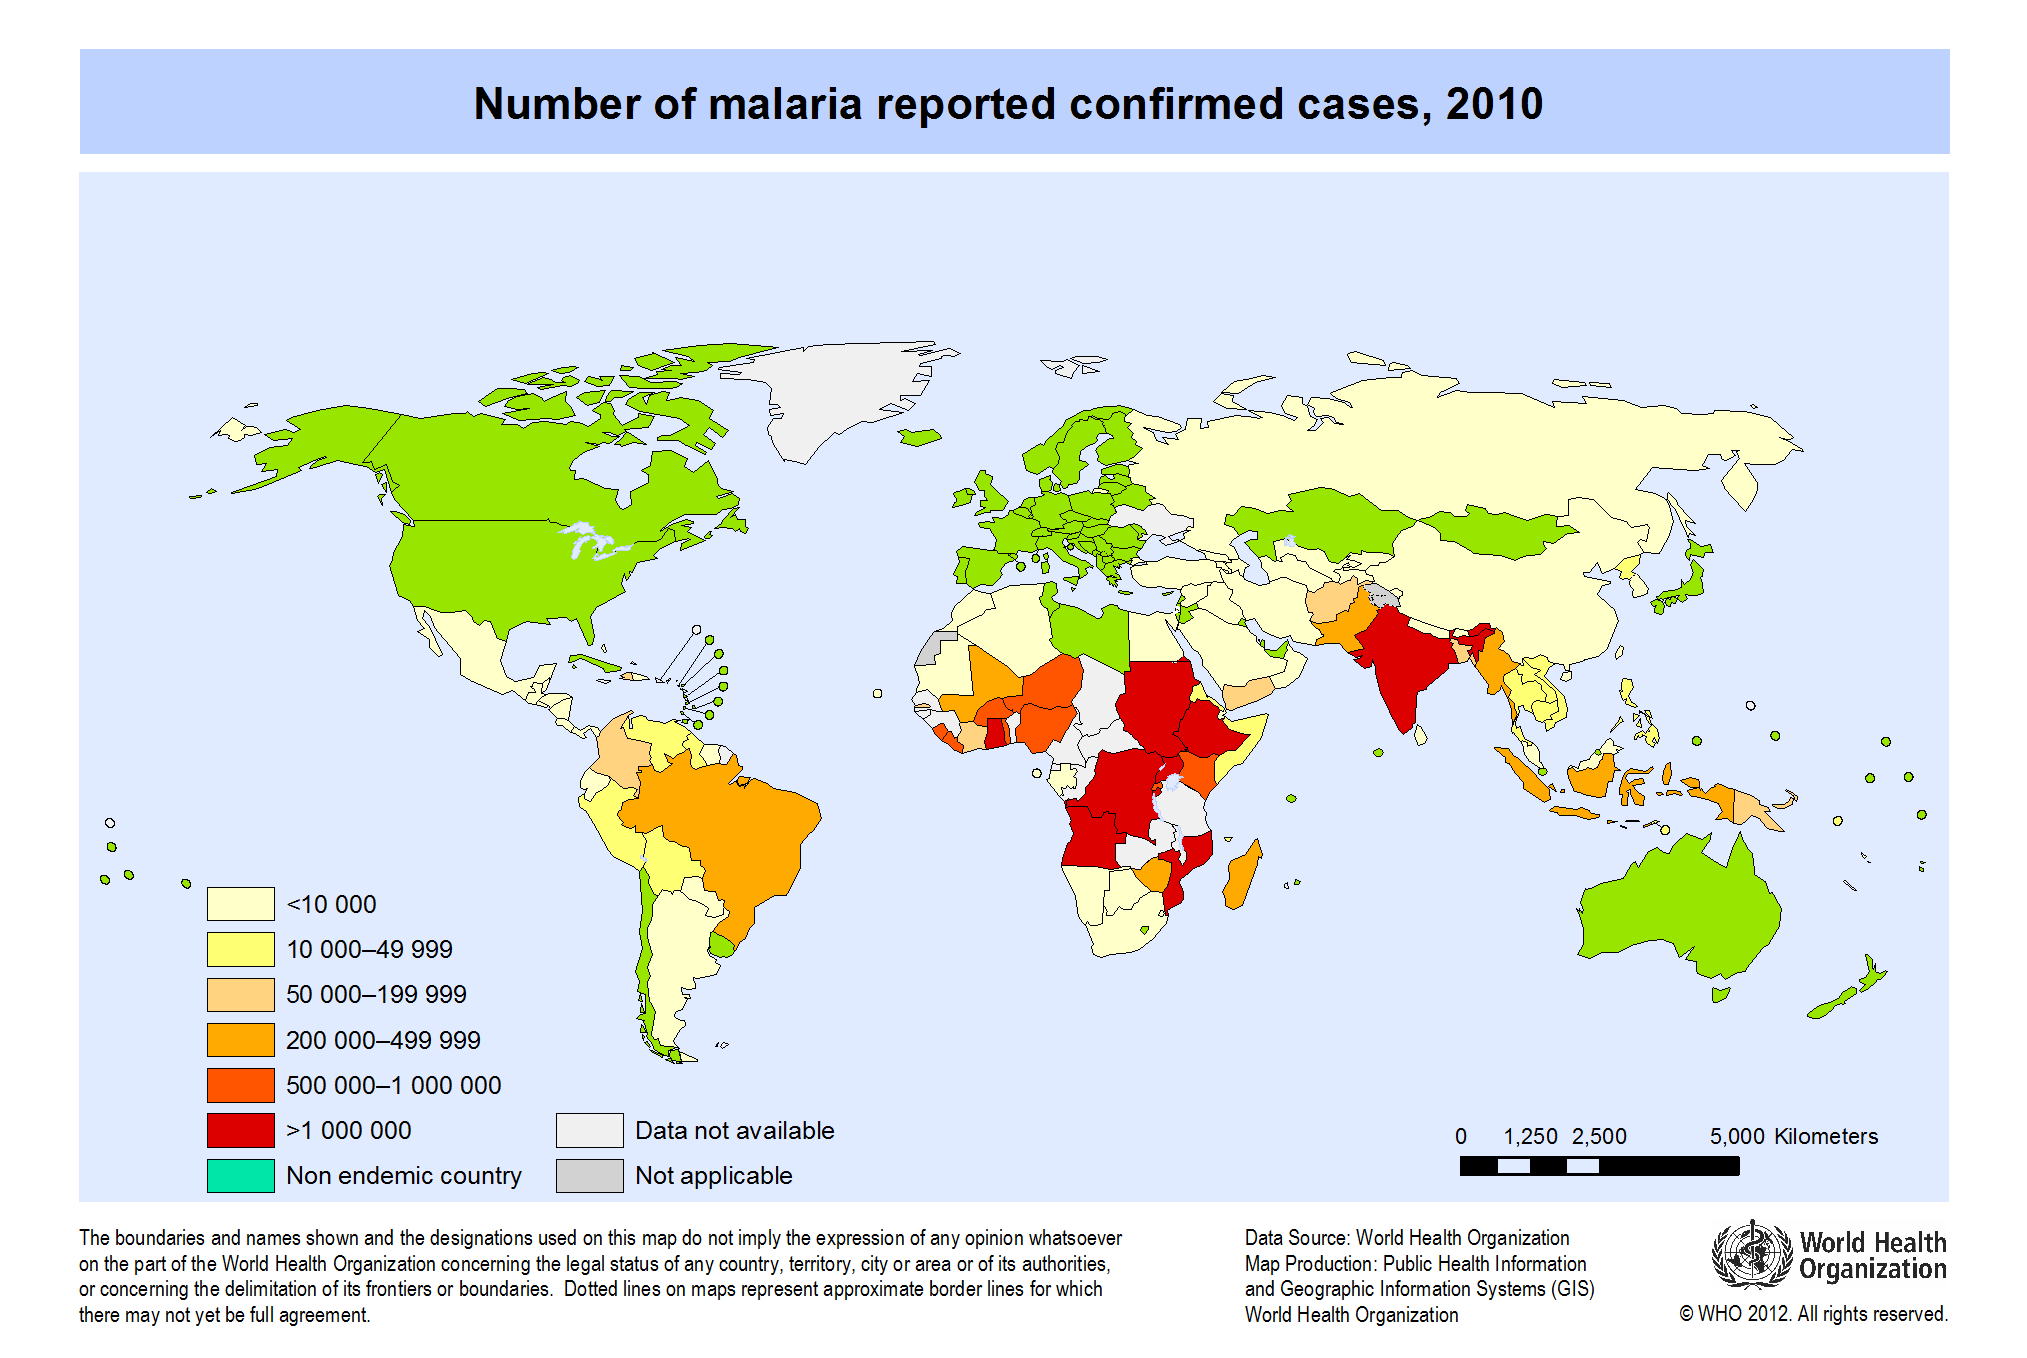 World: Number of malaria reported confirmed cases, 2010 ... on cdc anthrax map, cdc obesity map, cdc travel, cdc histoplasmosis map, cdc hepatitis a map, cdc location on map, cdc chikungunya map, cdc interactive map, world map, cdc rocky mountain spotted fever map, cdc immunization map, cdc maps may 2014, cdc water contamination map, cdc african trypanosomiasis map, cdc 5 moments, cdc ebola map, bubonic plague map, cdc coccidioidomycosis map, cdc measles map, cdc dengue map,